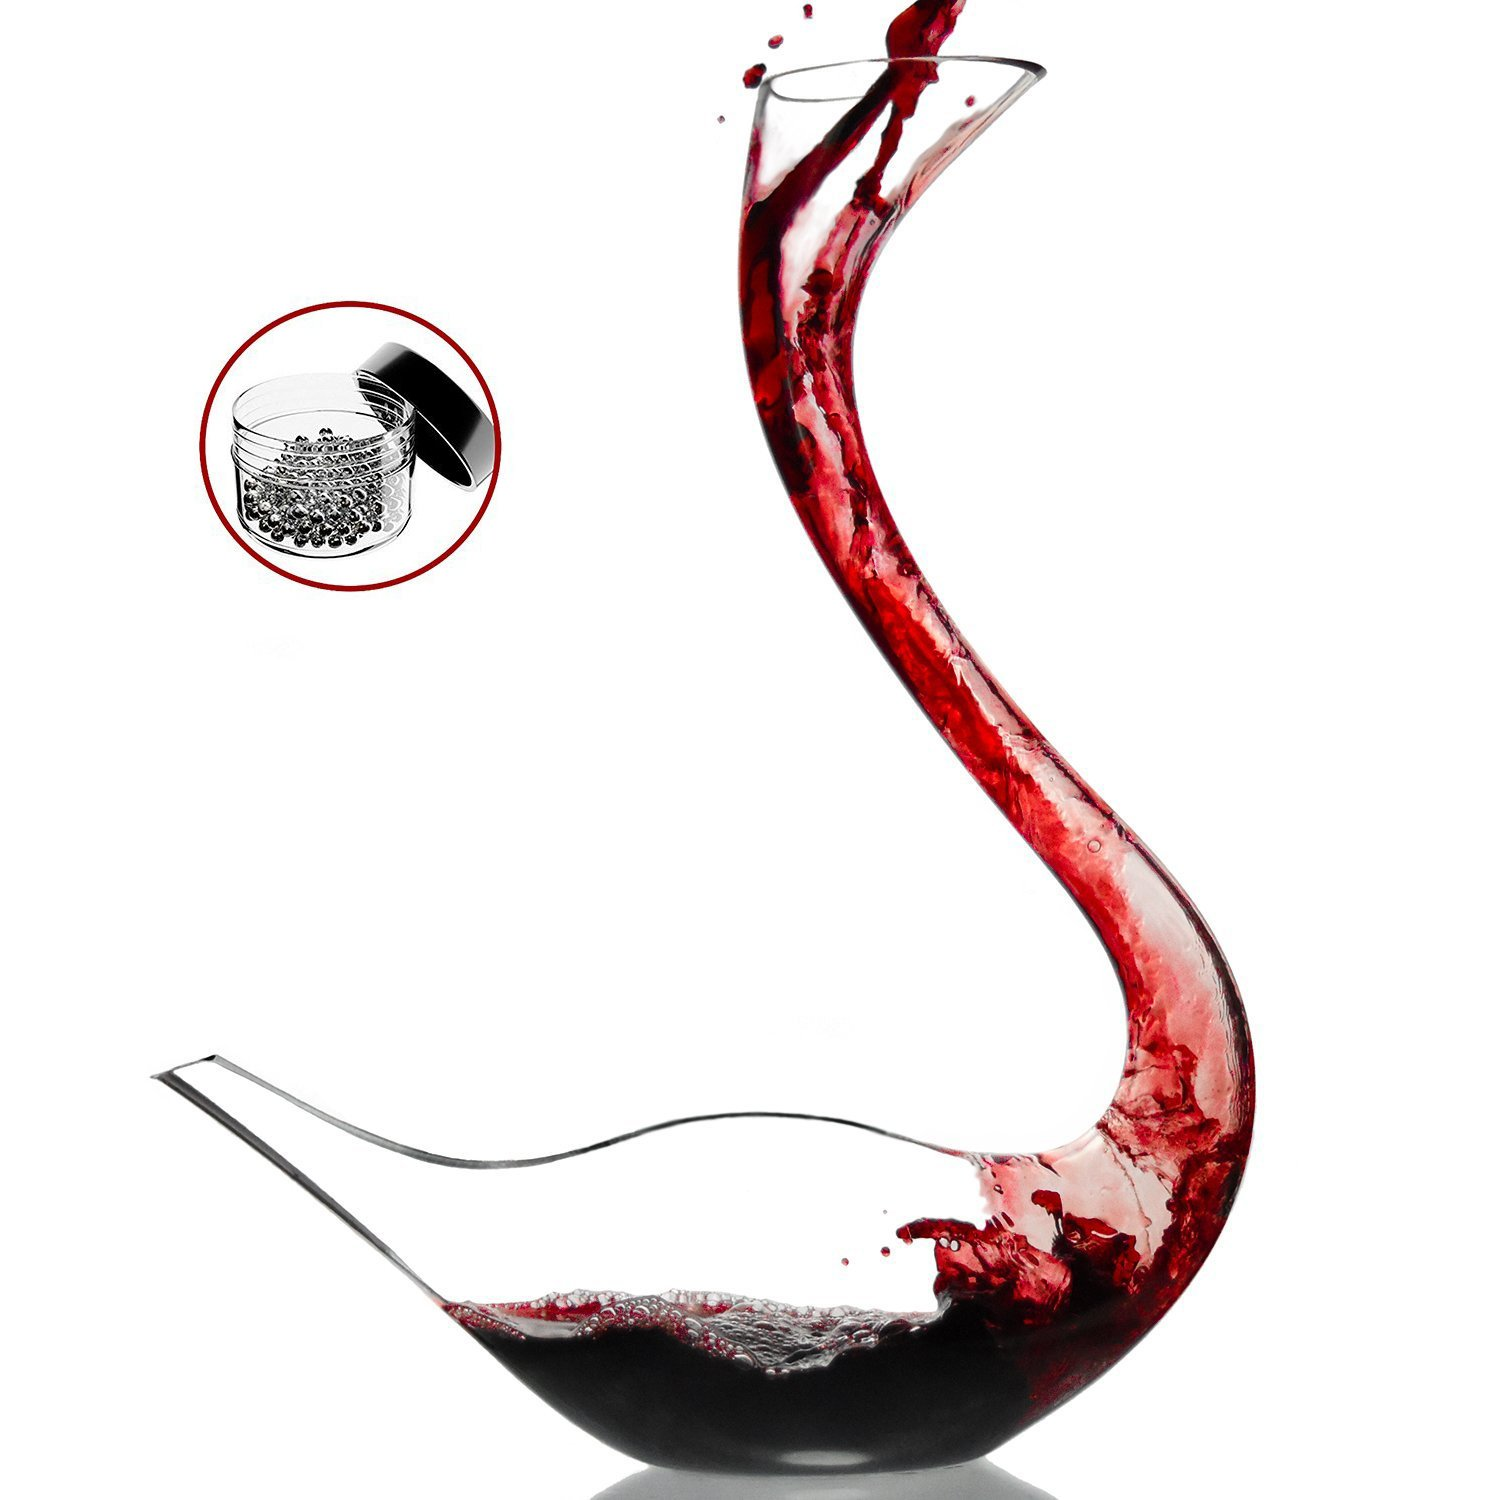 Amazing Home Cygnus Wine Decanter 100% Hand Blown Lead-free Crystal Glass Swan Decanter, Prepackaged Red Wine Carafe, Wine Gift, Wine Accessories,Gift Box Wrapped and Free Cleaning Beads Set by Amazing Home